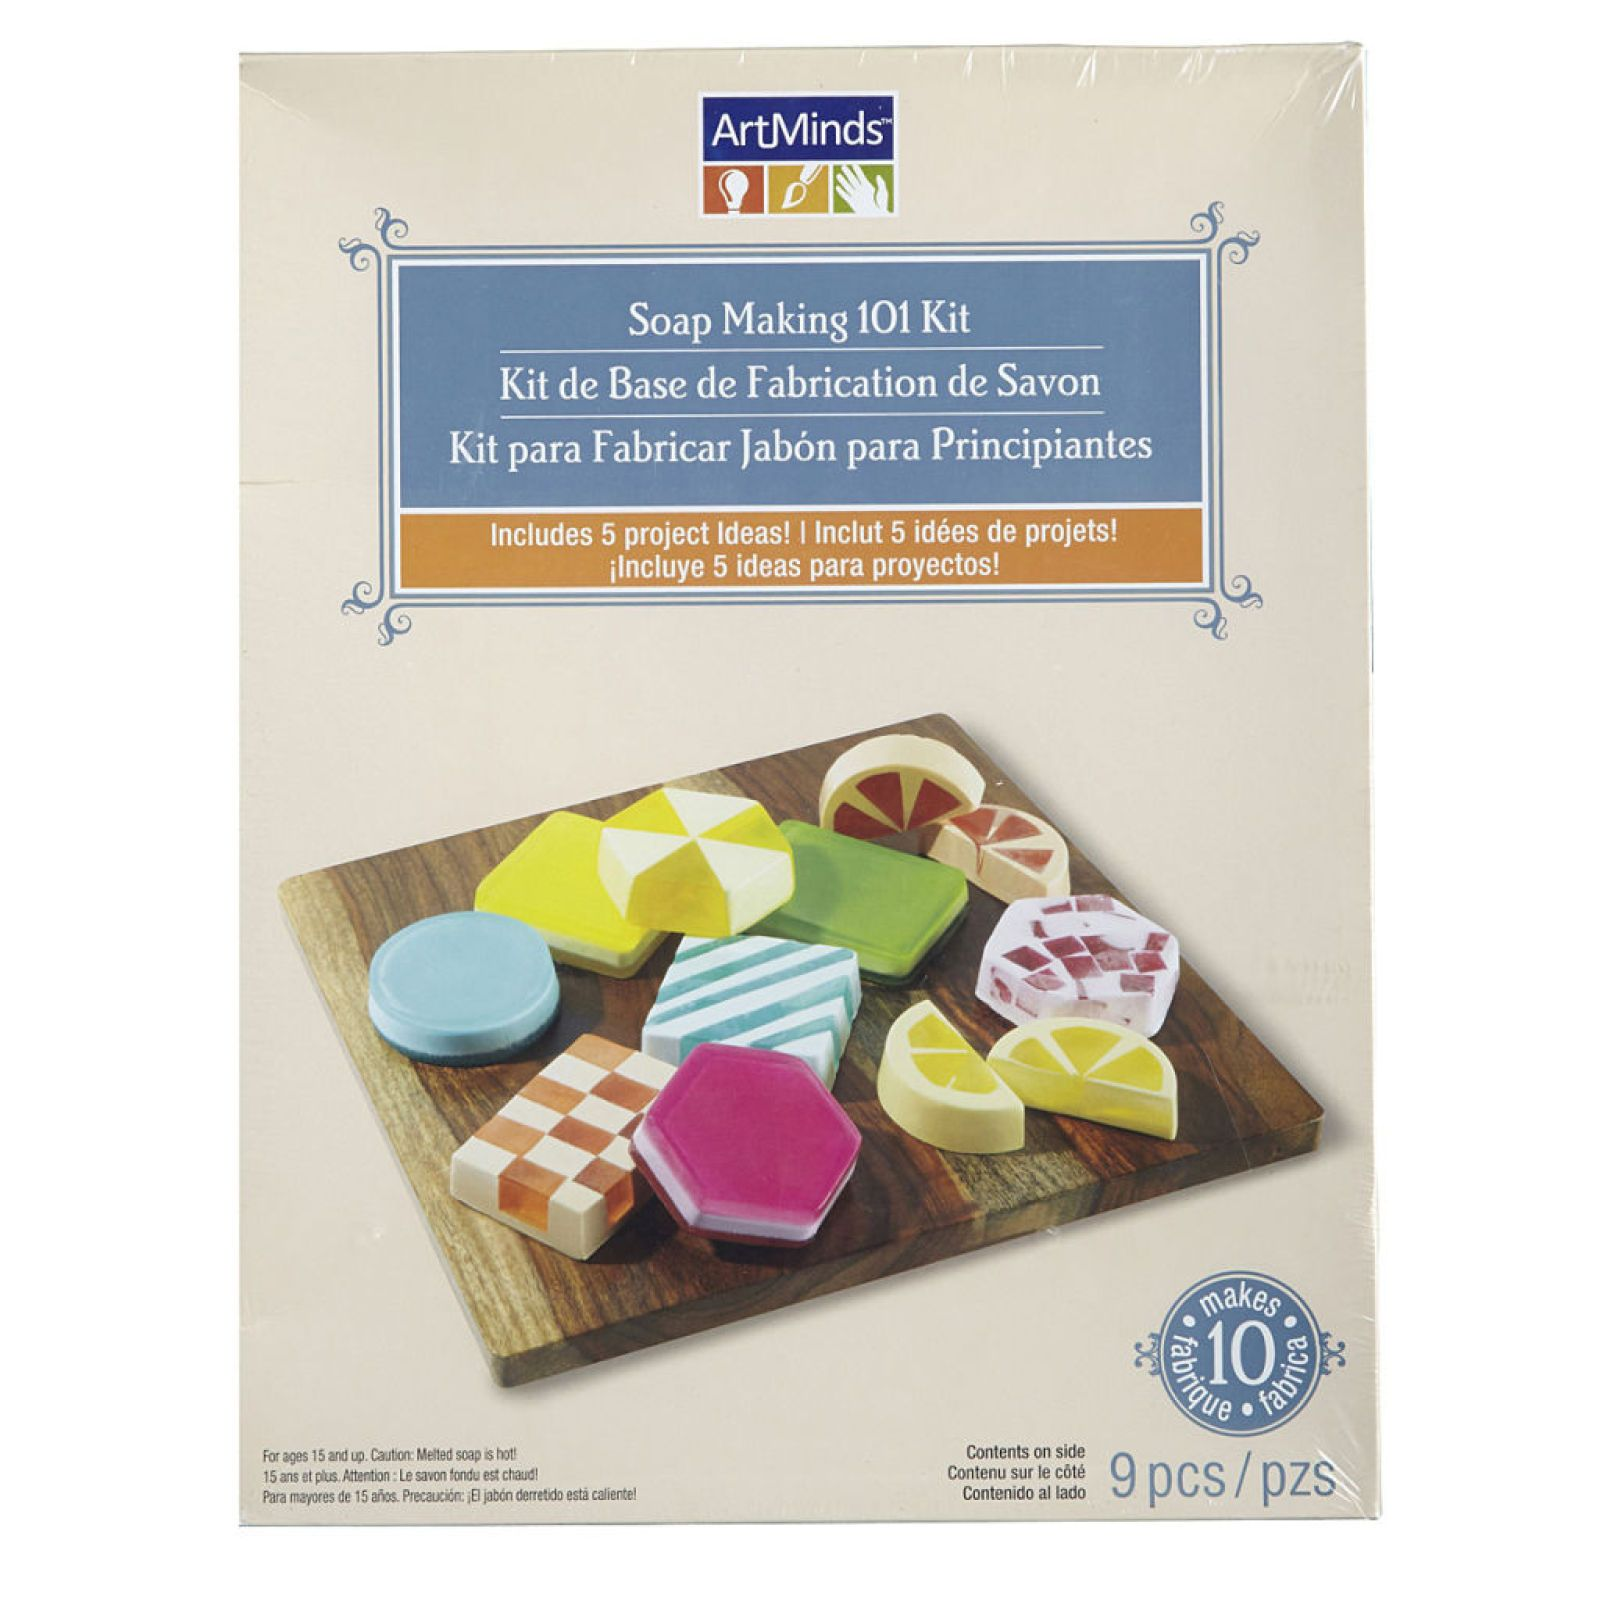 Soap Making 101 Kit By Artminds� | Michaels® | Soap making, Soap, Kit